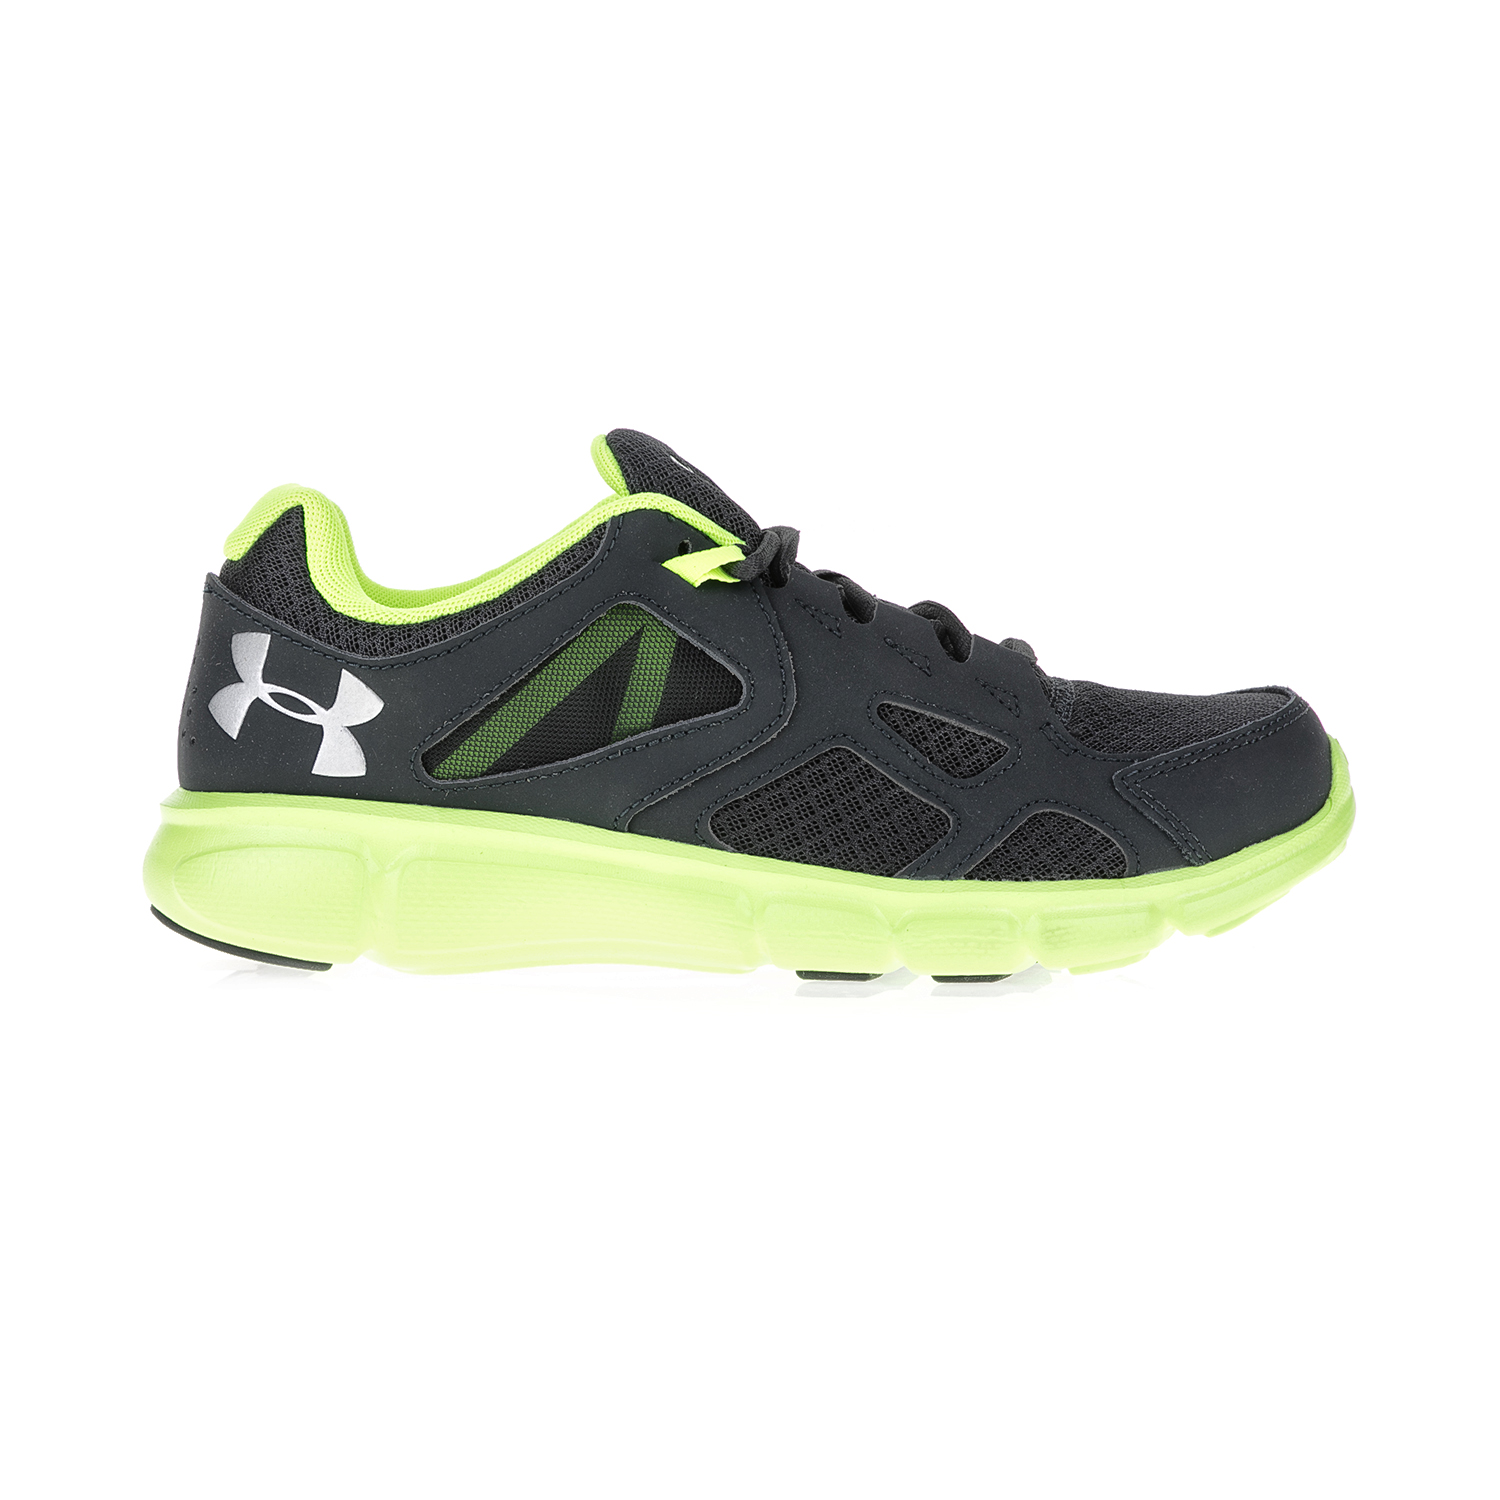 UNDER ARMOUR - Ανδρικά αθλητικά παπούτσια UNDER ARMOUR THRILL μαύρα-πράσινα